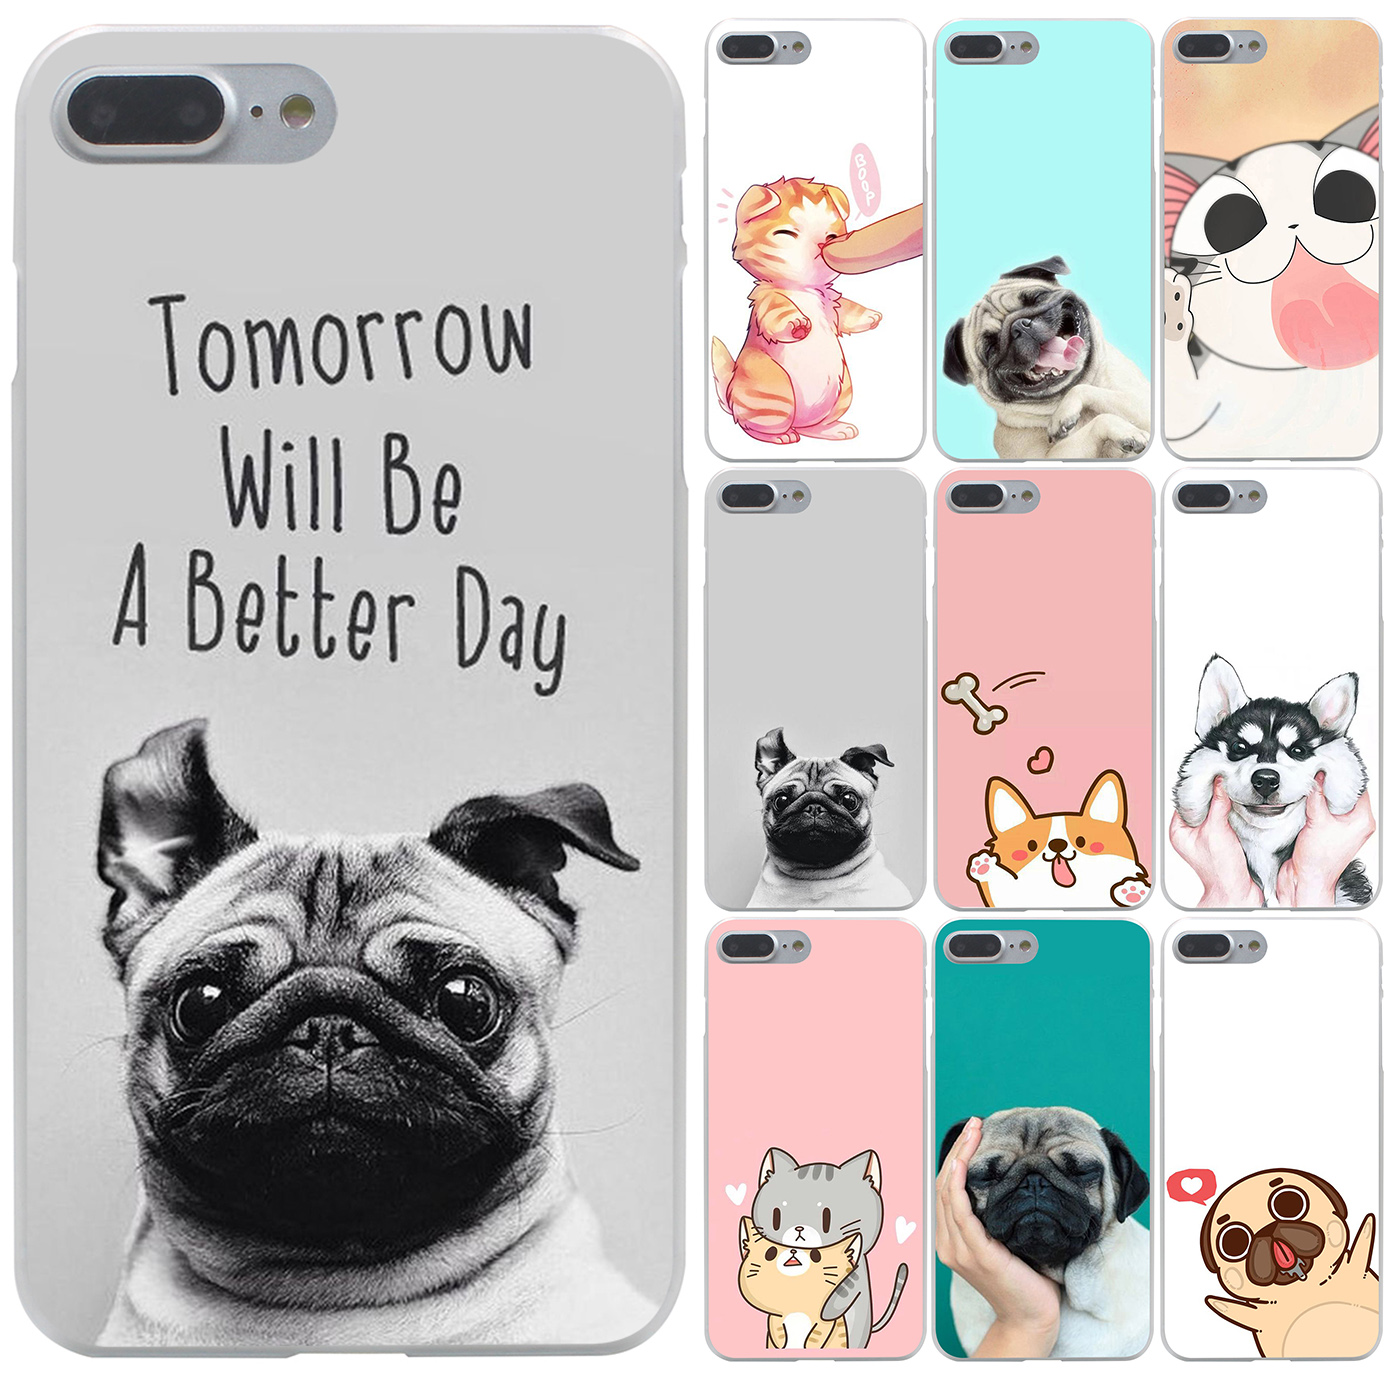 new Pug Dog cat Design Hard Case Transparent Cover for iPhone 7 7 Plus 6 6s Plus 5 5s 5c SE 4 4s